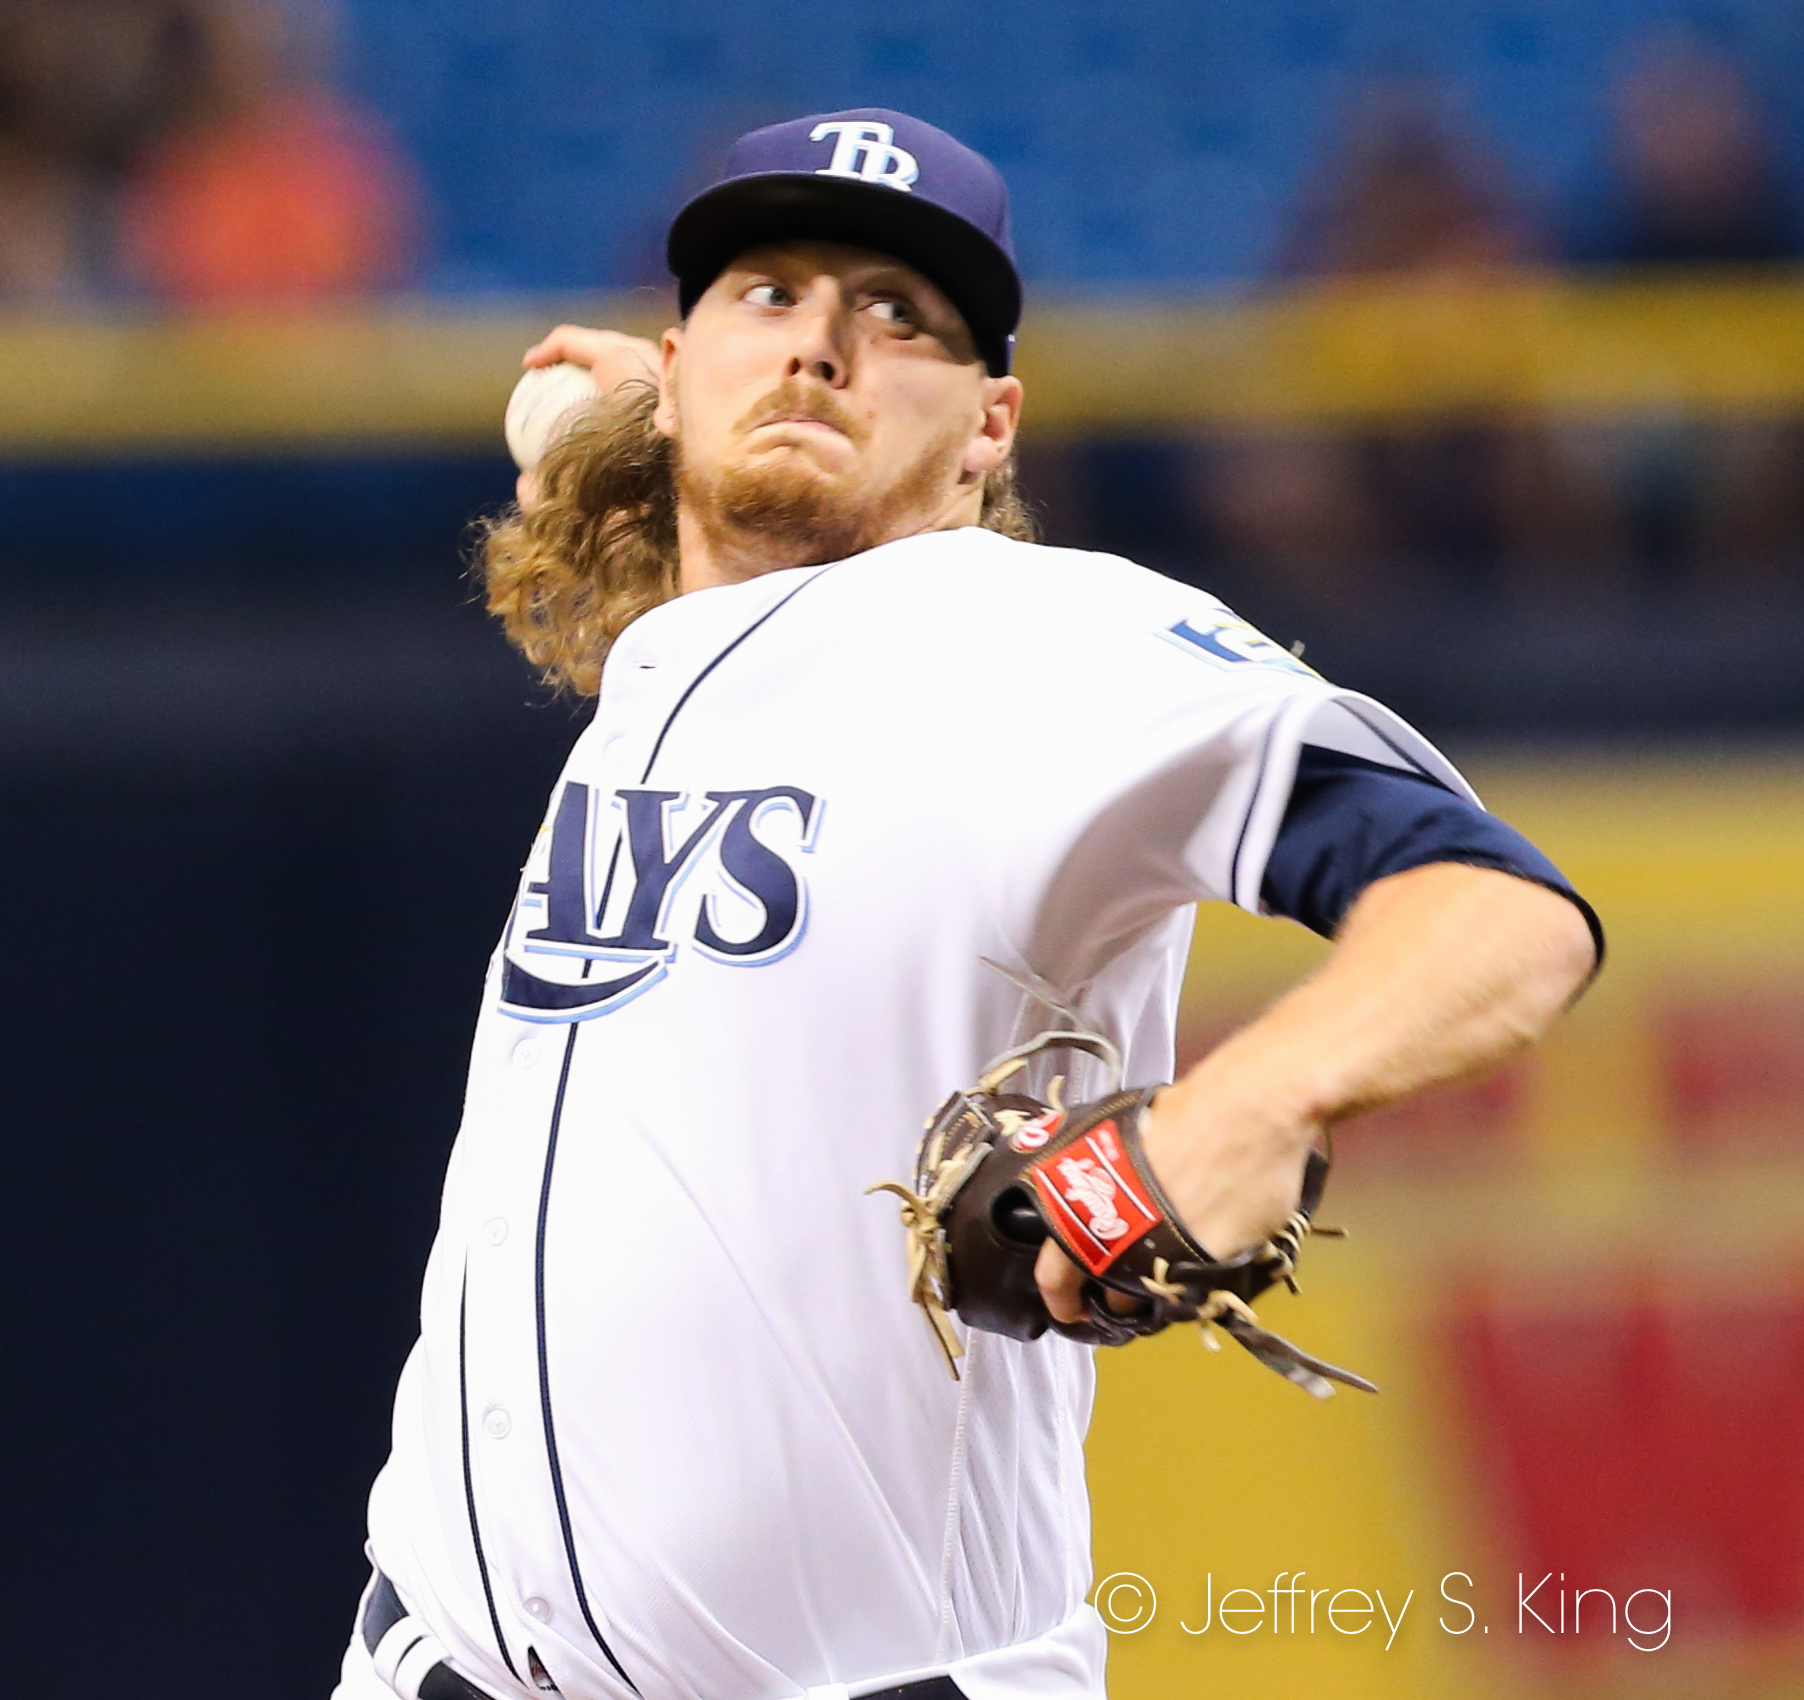 Stanek started for the Rays./JEFFREY S. KING